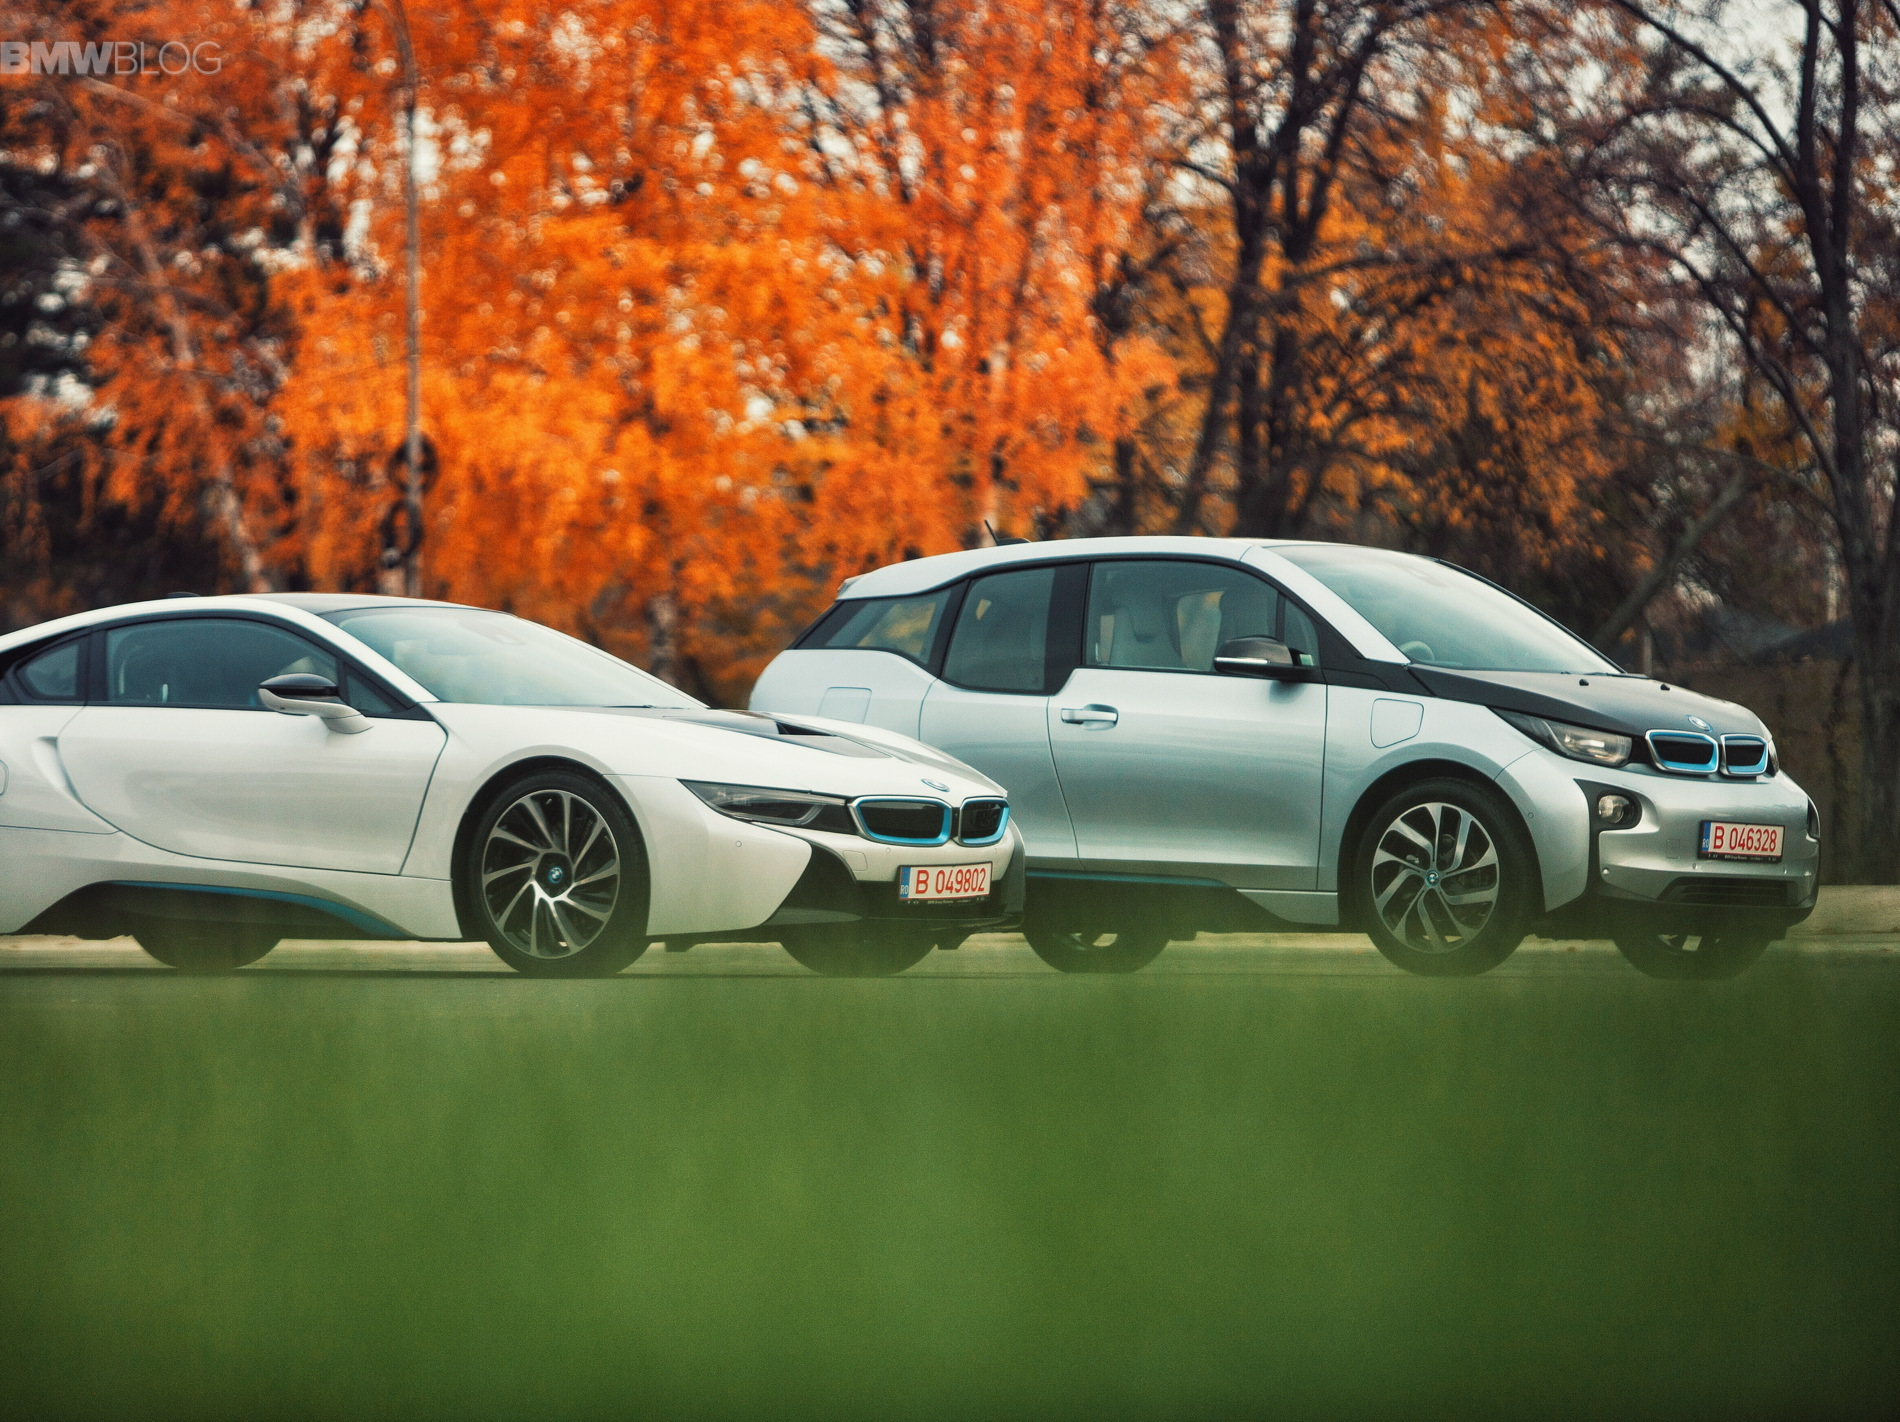 BMW i3 i8 photoshoot bucharest images 19